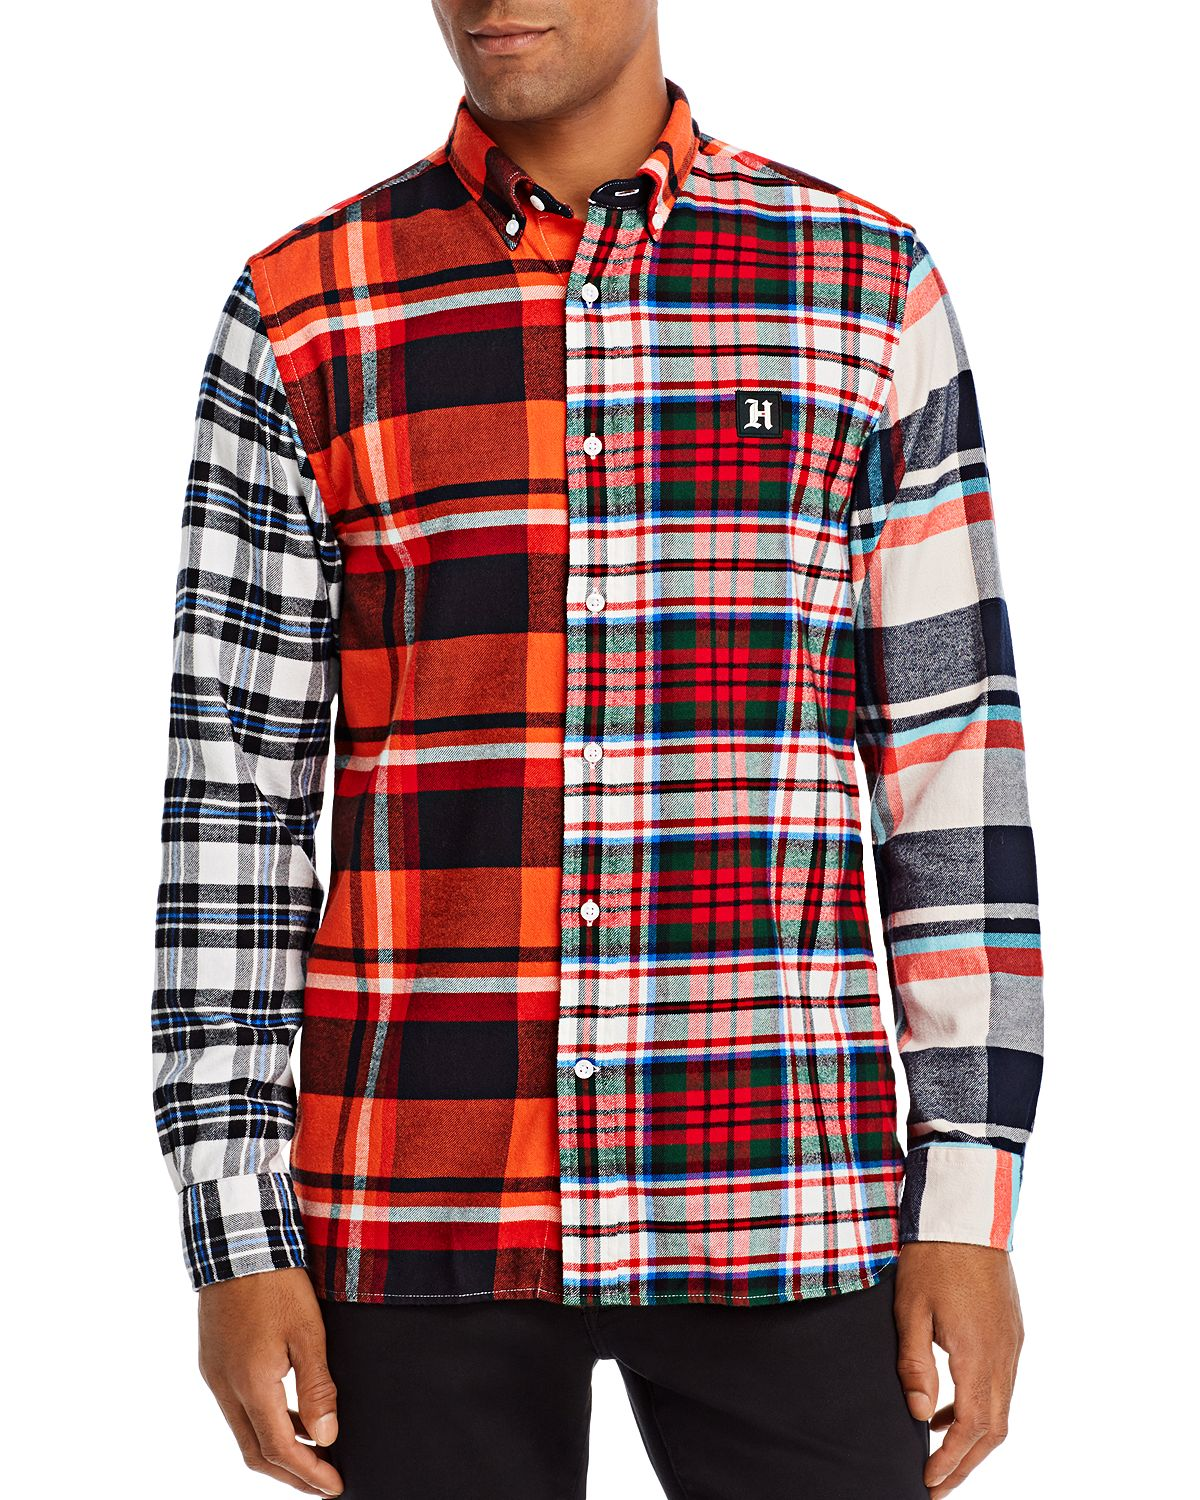 Tommy Hilfiger Multi-check Regular Fit Button-down Shirt Fiesta / Jet Black / Multi